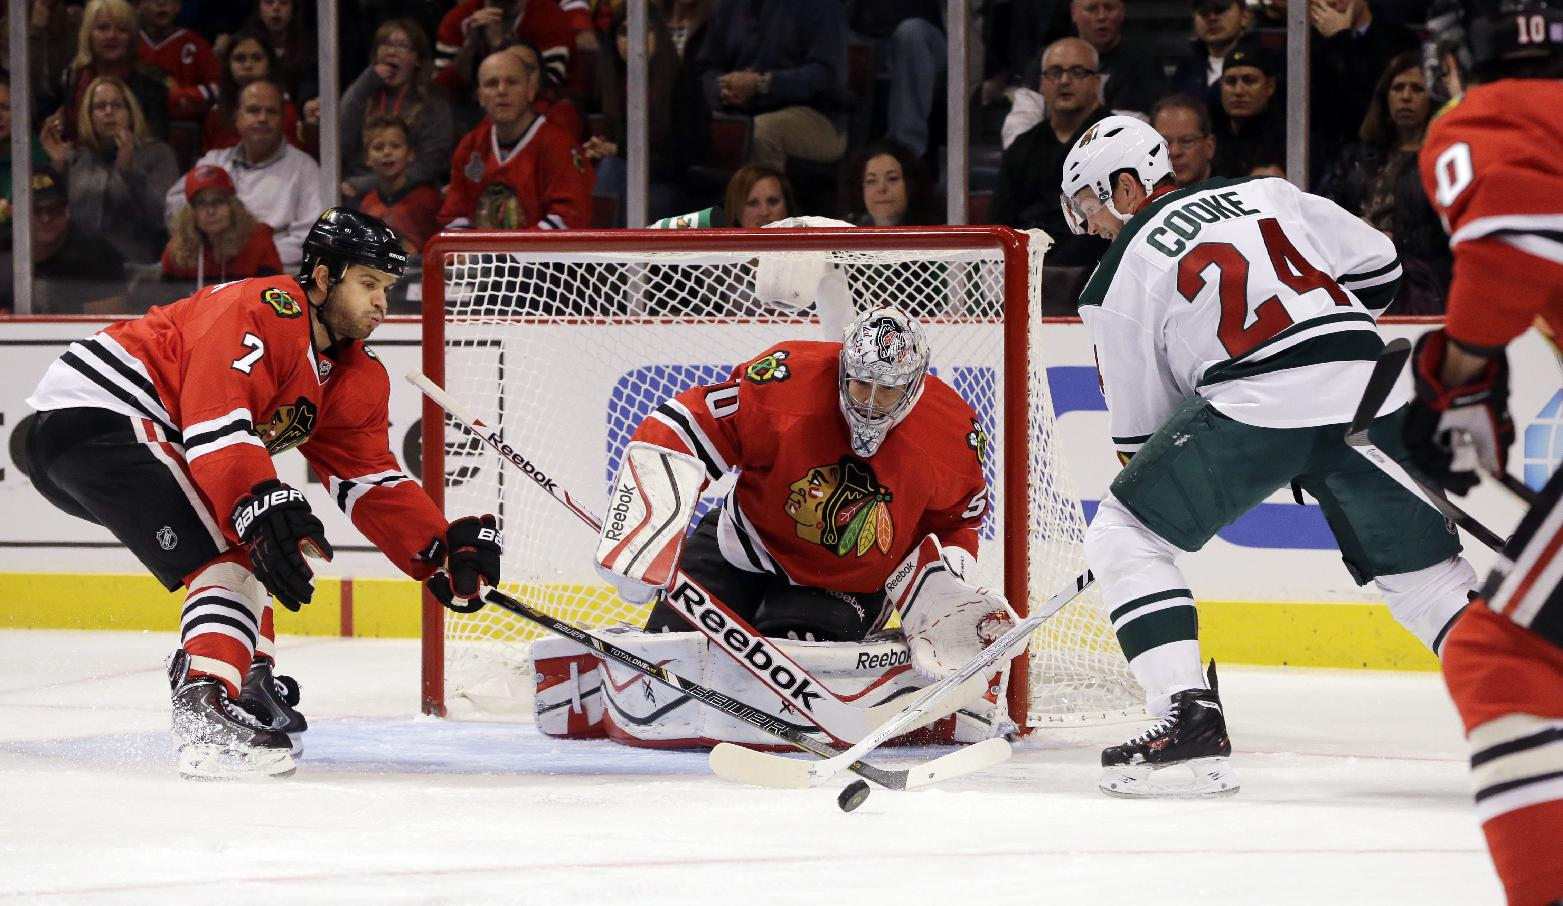 In this Oct. 26, 2013 file photo, Minnesota Wild's Matt Cooke (24) and  Chicago Blackhawks' Brent Seabrook (7) battle for the puck in front of goalie Corey Crawford (50) during the first period of an NHL hockey game in Chicago. The Chicago Blackhawks lead the NHL with 145 goals. Seabrook has three goals and 23 assists after he had 20 points in 47 games last season